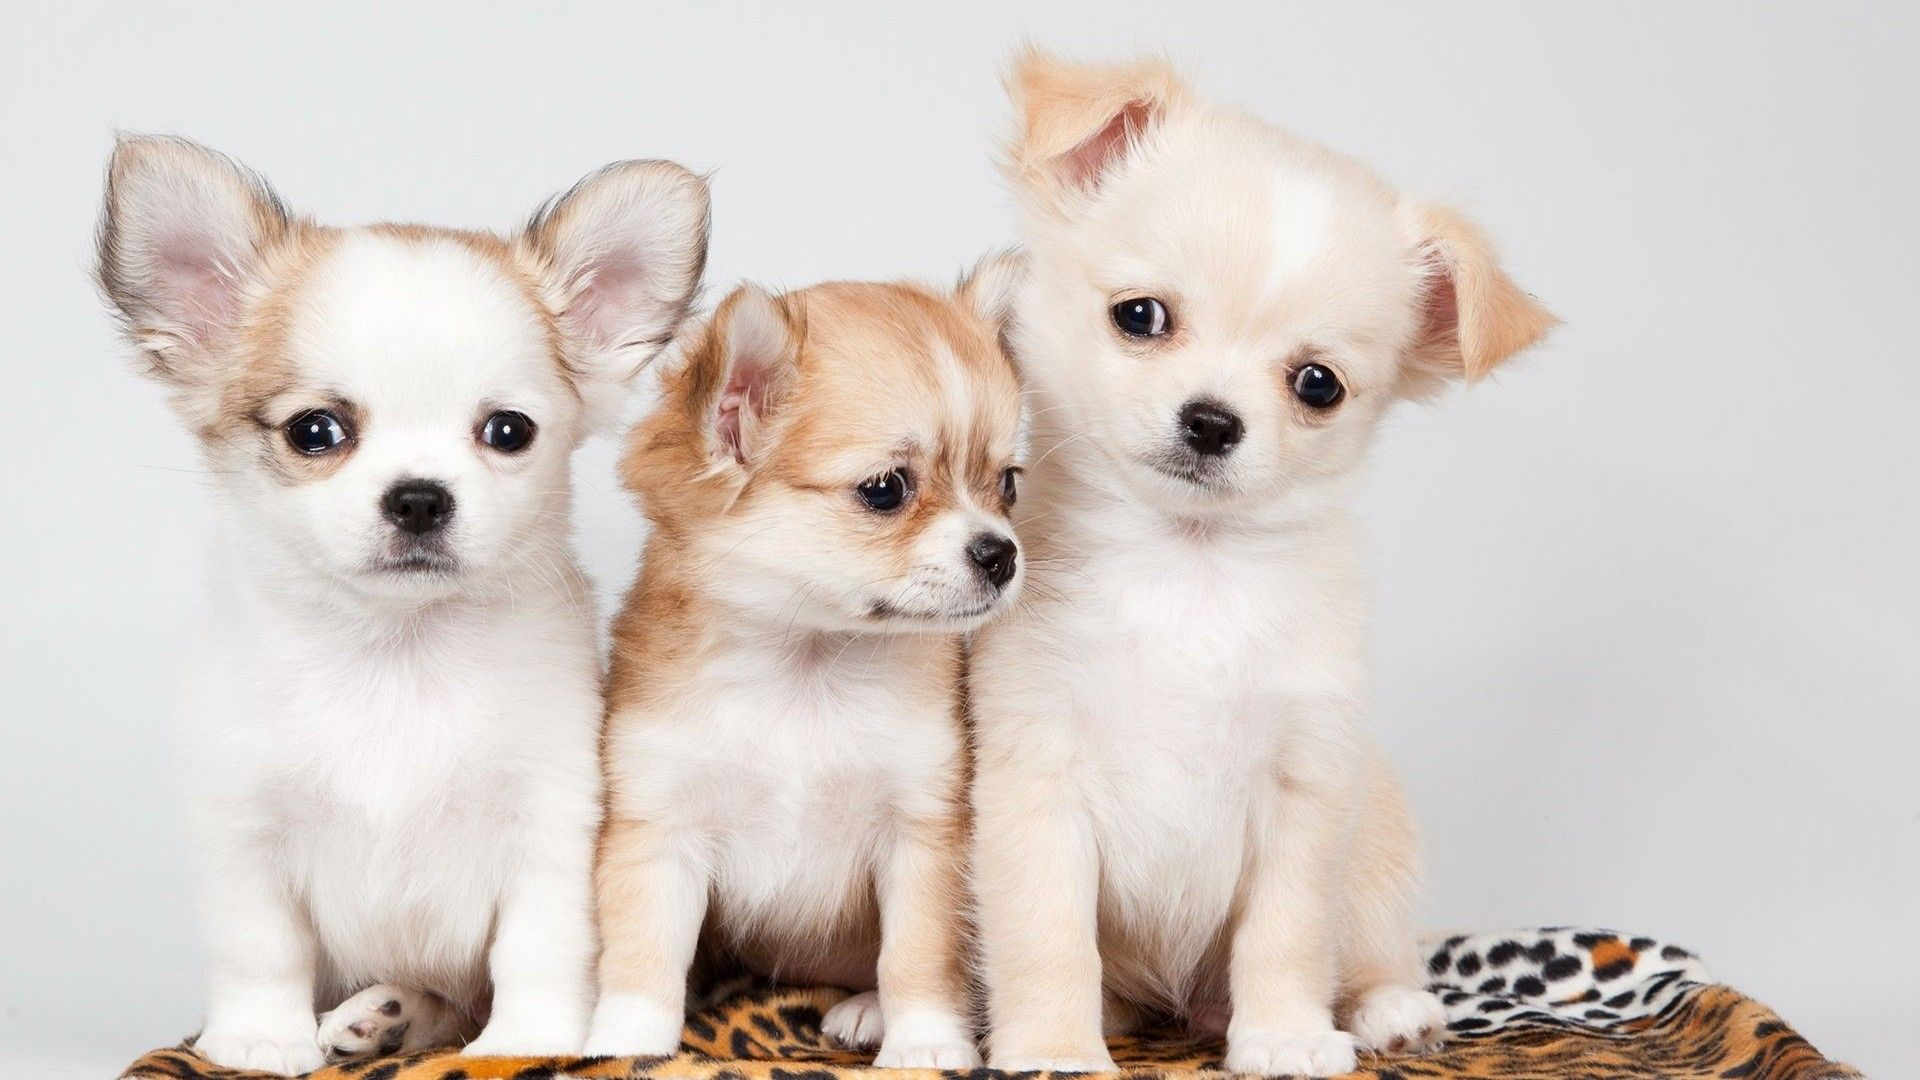 Wallpapers Cute Puppies Pictures Best Hd Wallpapers Cute Puppy Wallpaper Chihuahua Puppies